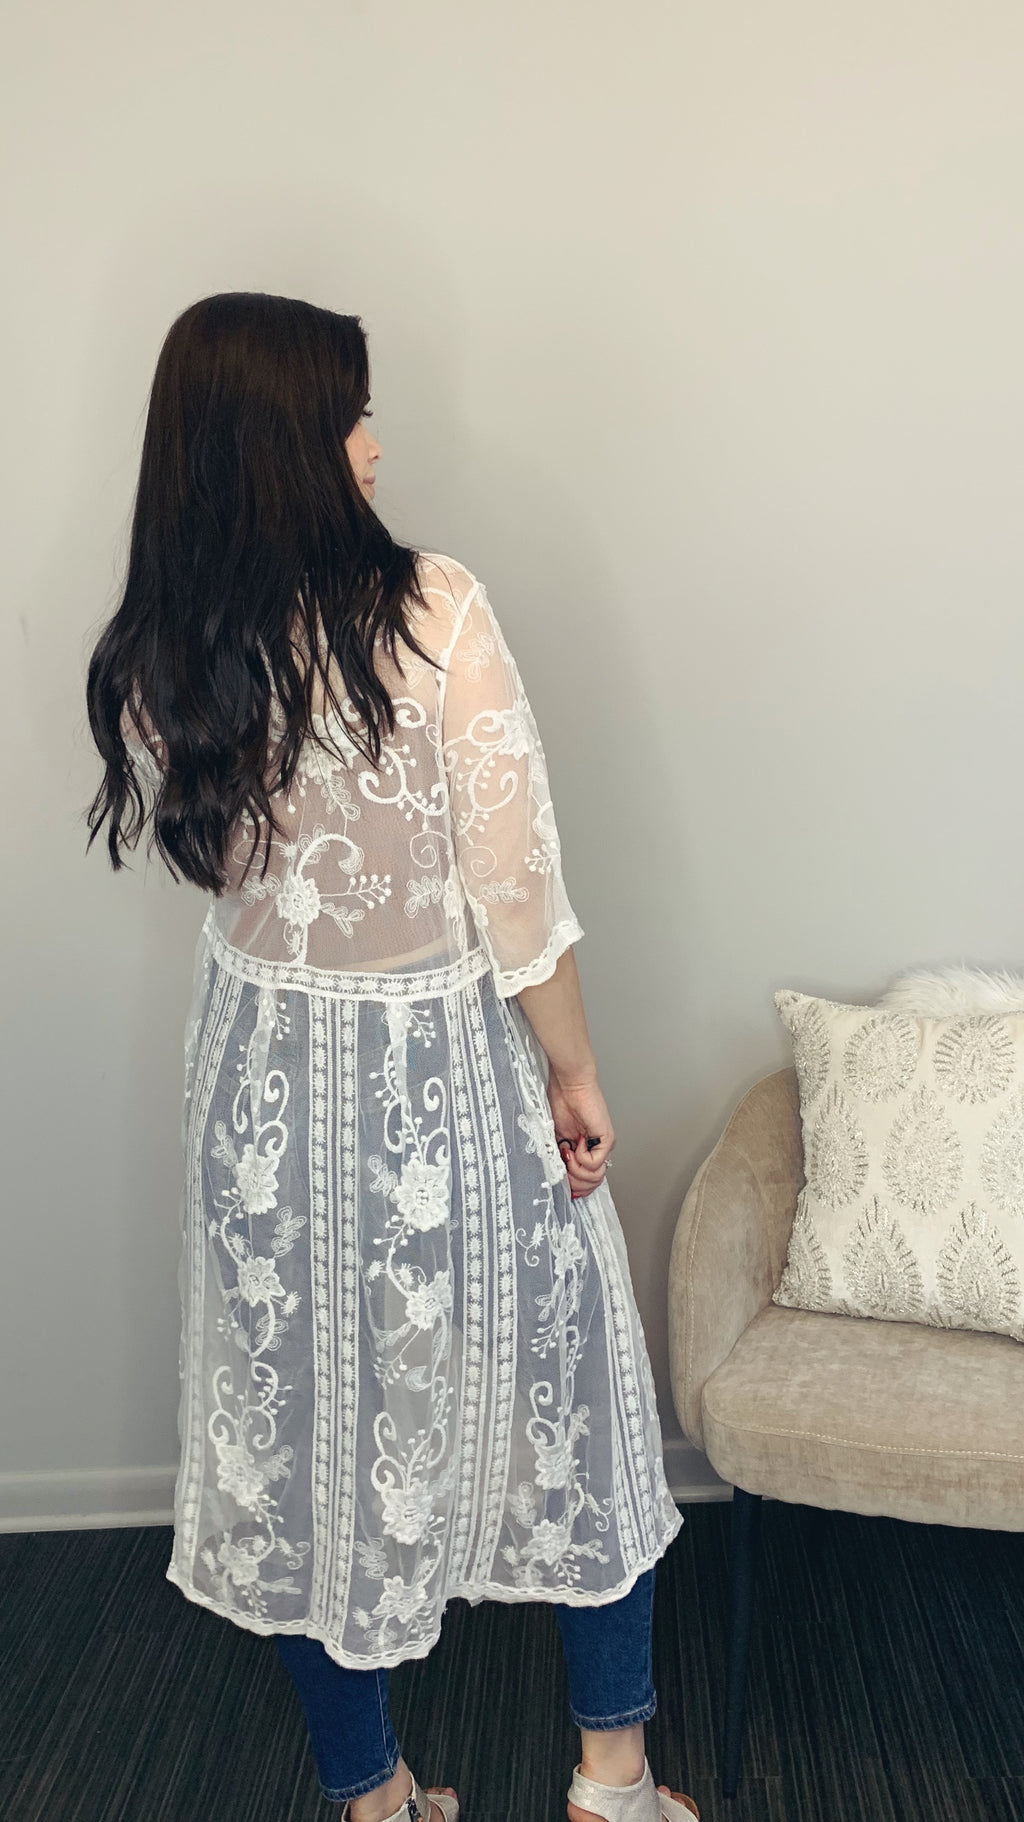 Off-White Lace Duster Cardigan - Short Sleeves